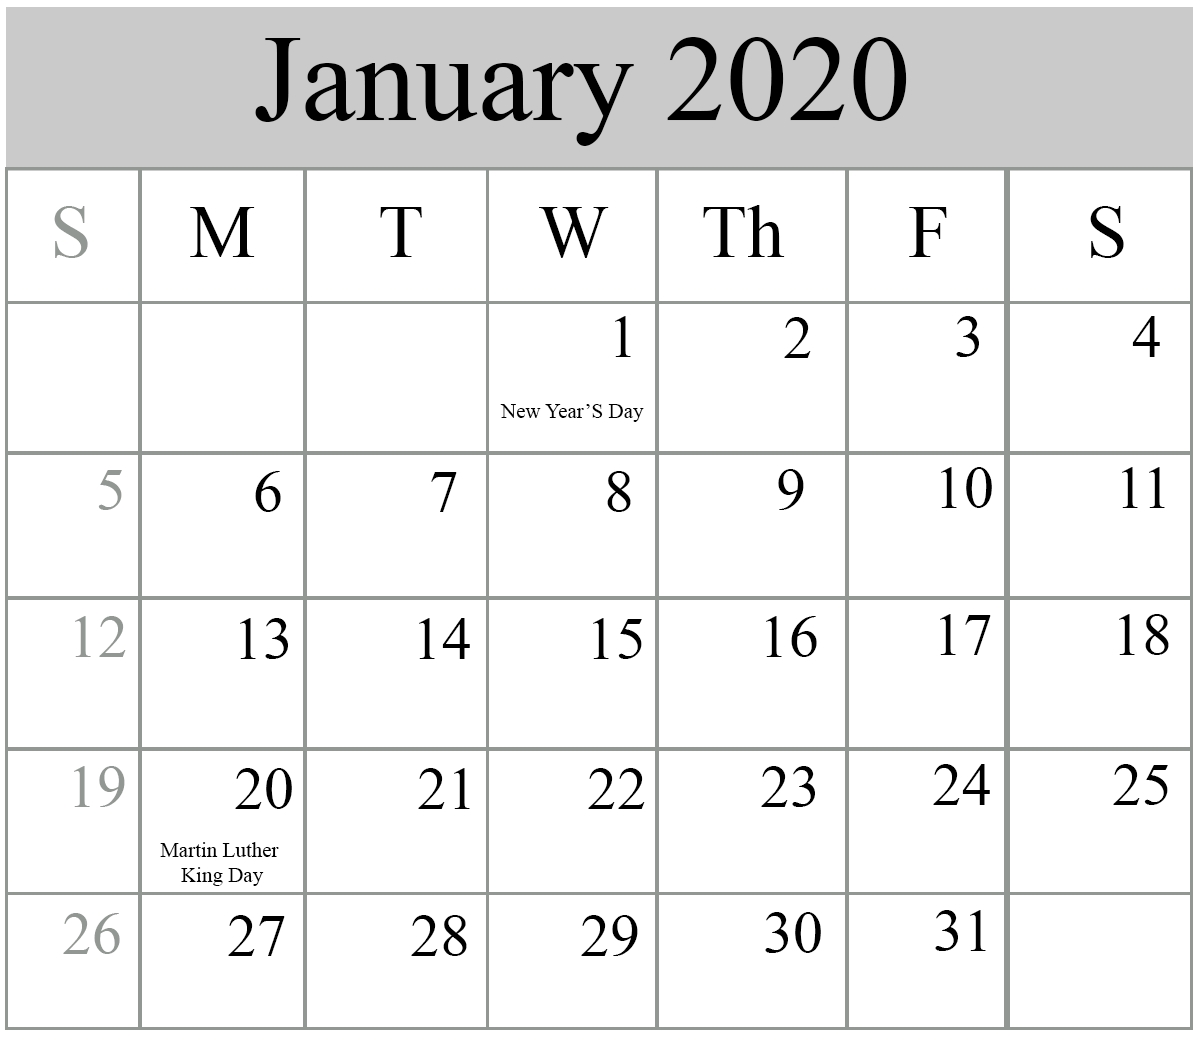 Free Blank January 2020 Calendar Printable In Pdf, Word-January 2020 Calendar With Holidays